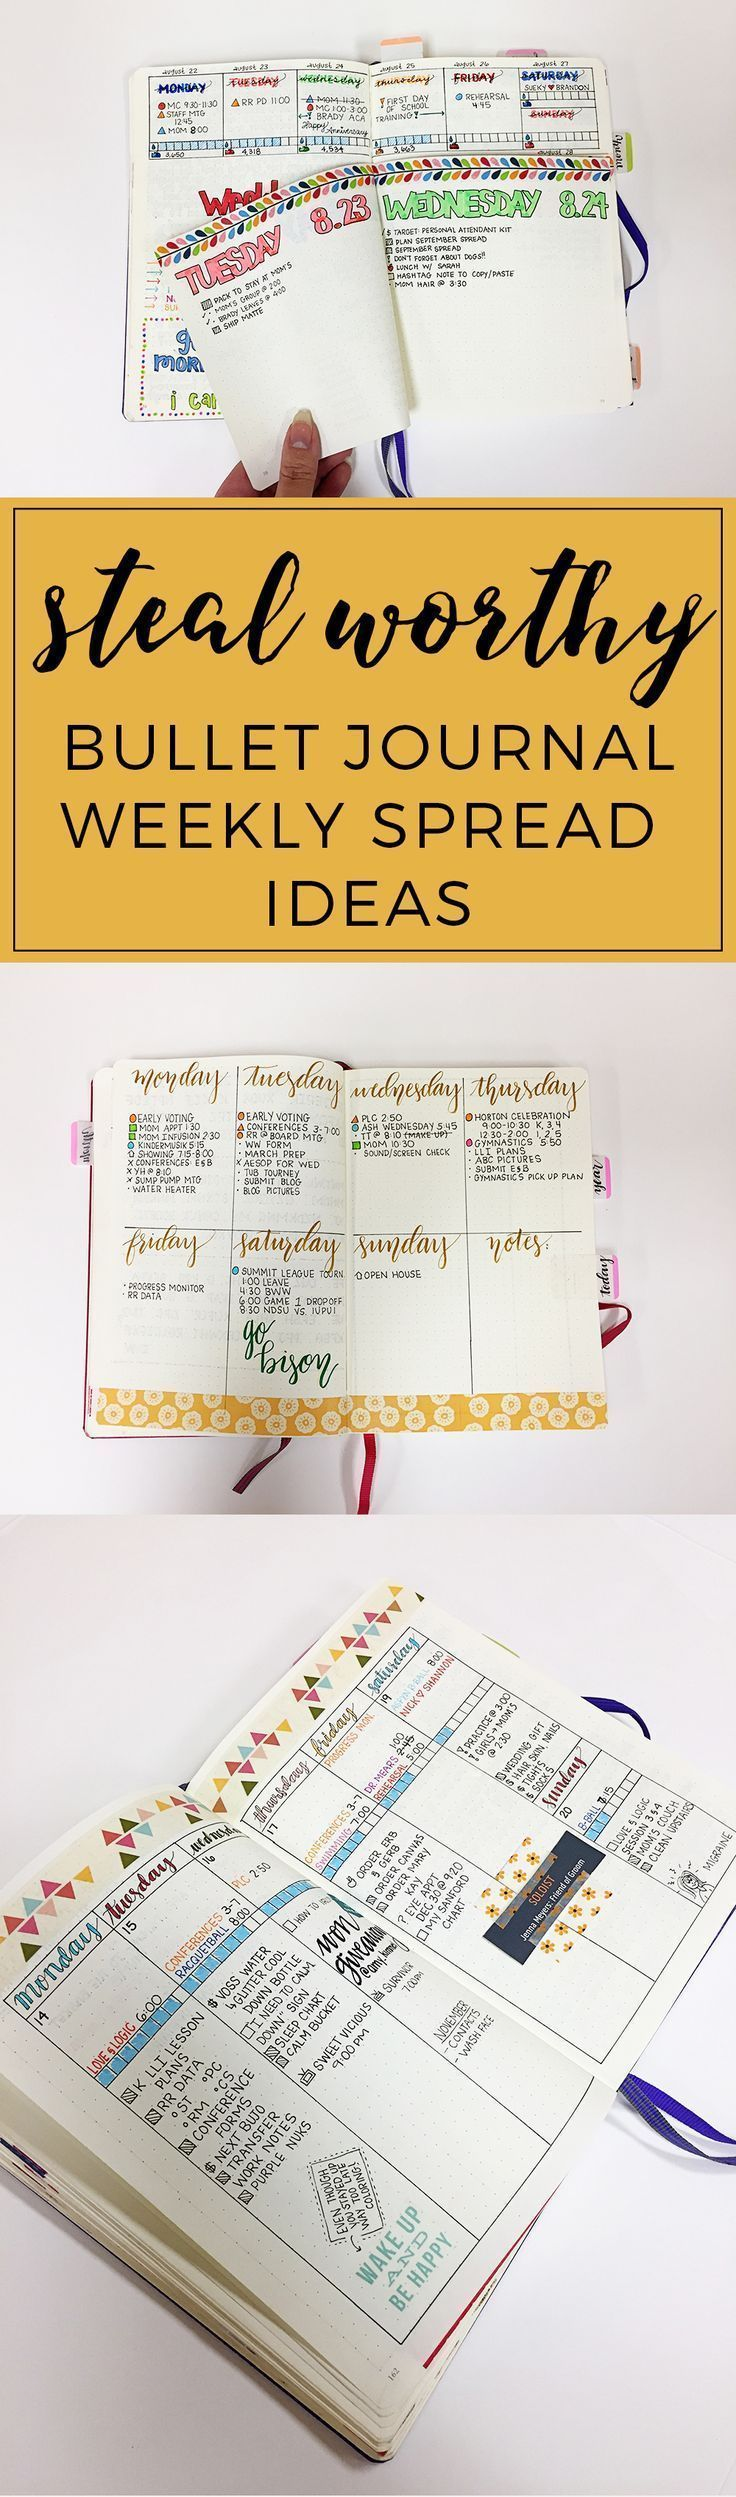 Steal-worthy Bullet Journal Weekly Spread Ideas http://productiveandpretty.com/bullet-journal-weekly-spread-ideas/?utm_campaign=coschedule&utm_source=pinterest&utm_medium=Jen%20%2B%20Liz%20%7C%20Productive%20and%20Pretty&utm_content=Steal-worthy%20Bullet%